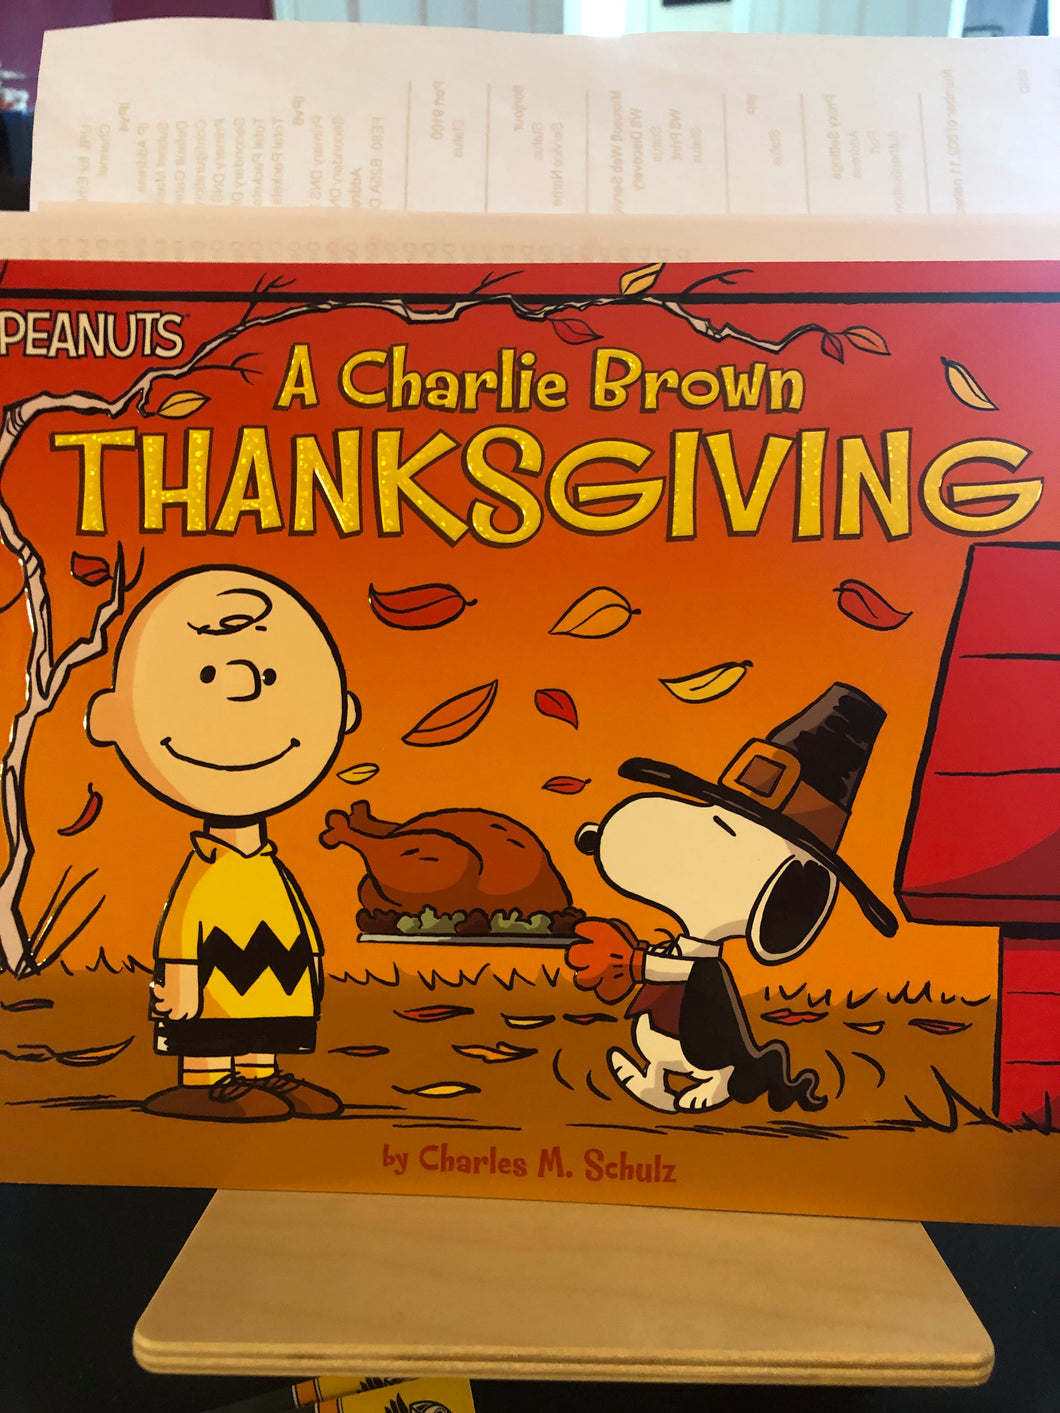 A Charlie Brown Thanksgiving    Peanuts    by Charles M. Schulz